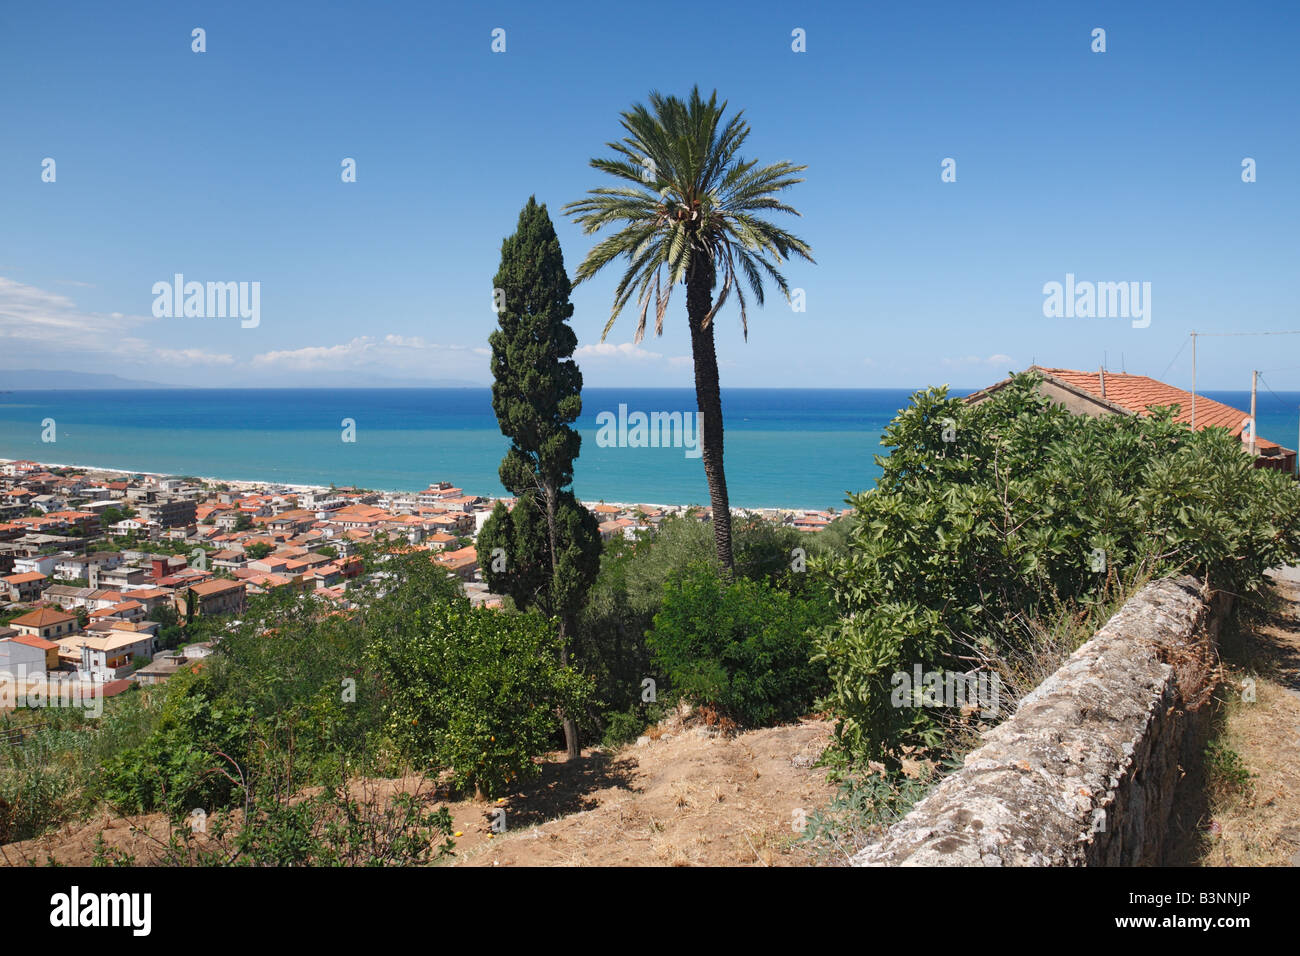 stadt am meer panoramablick auf nicotera marina kalabrien italien stock photo royalty free. Black Bedroom Furniture Sets. Home Design Ideas